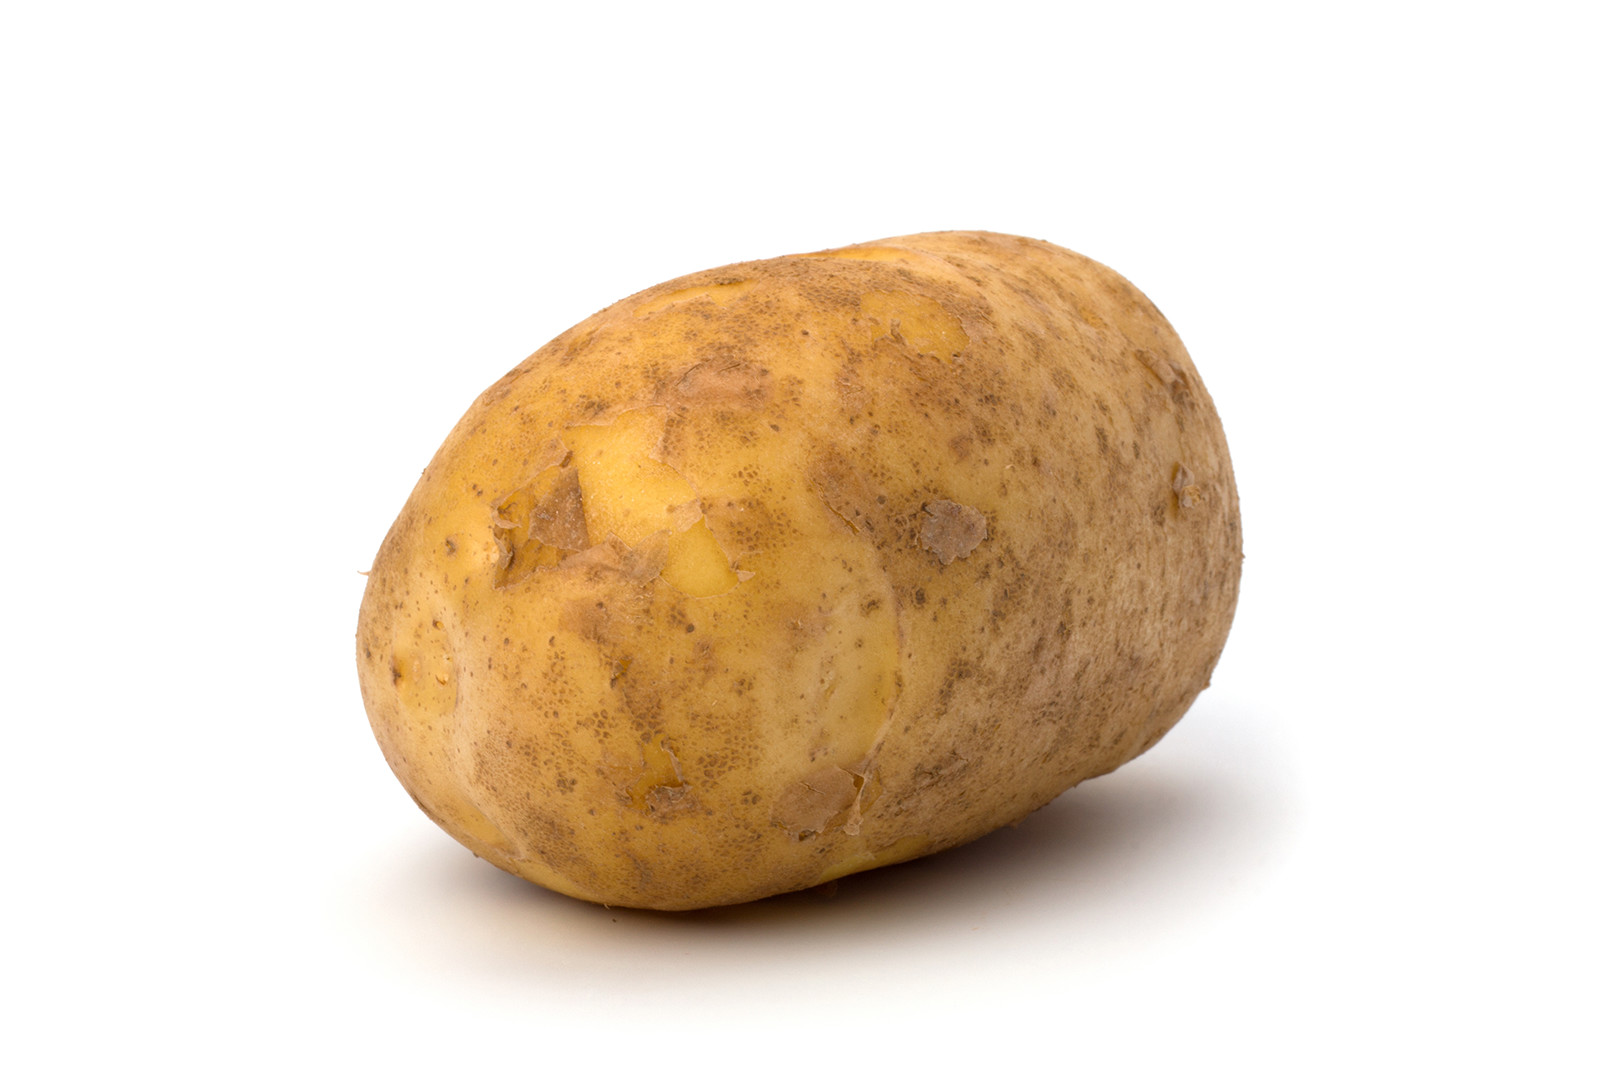 Image of a potato - a staple in any diet